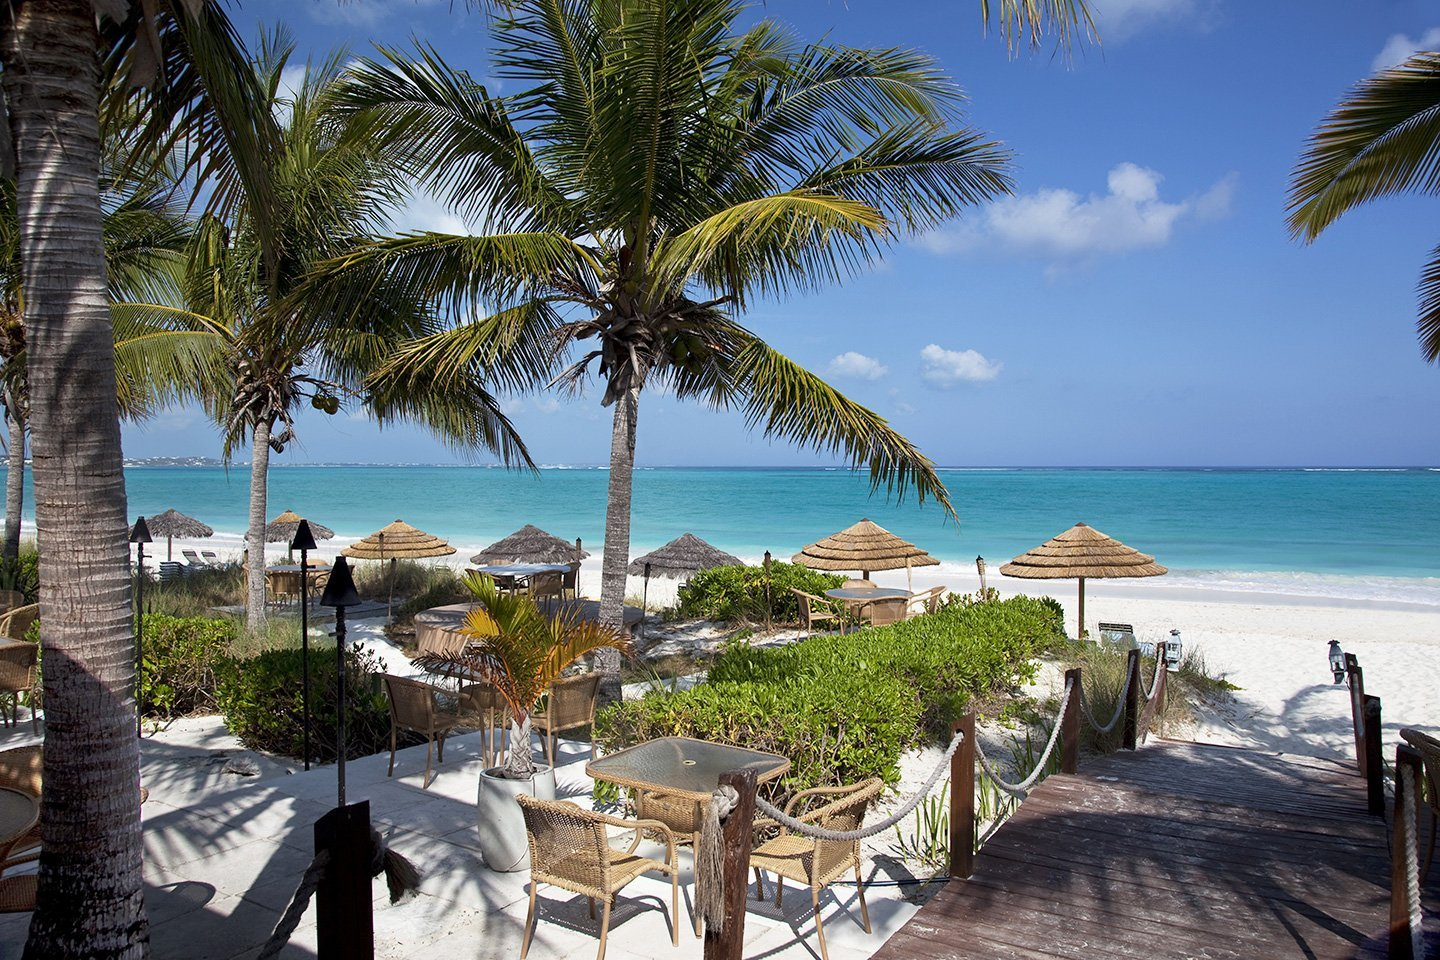 Restaurant in Grace Bay Beach - Turks and Caicos